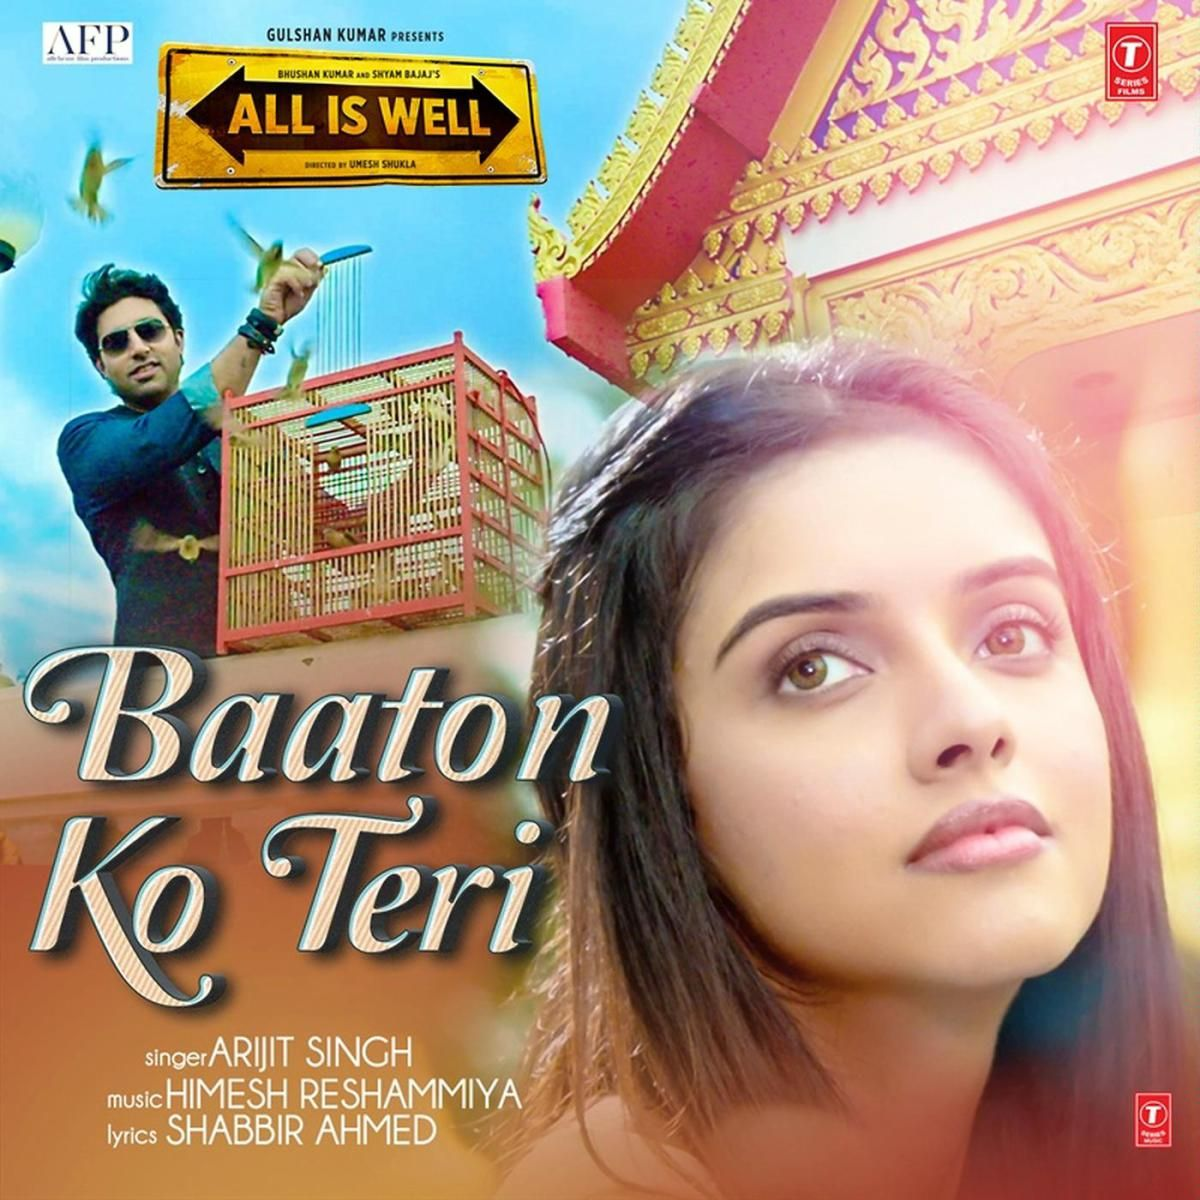 baaton ko teri hd video song free download